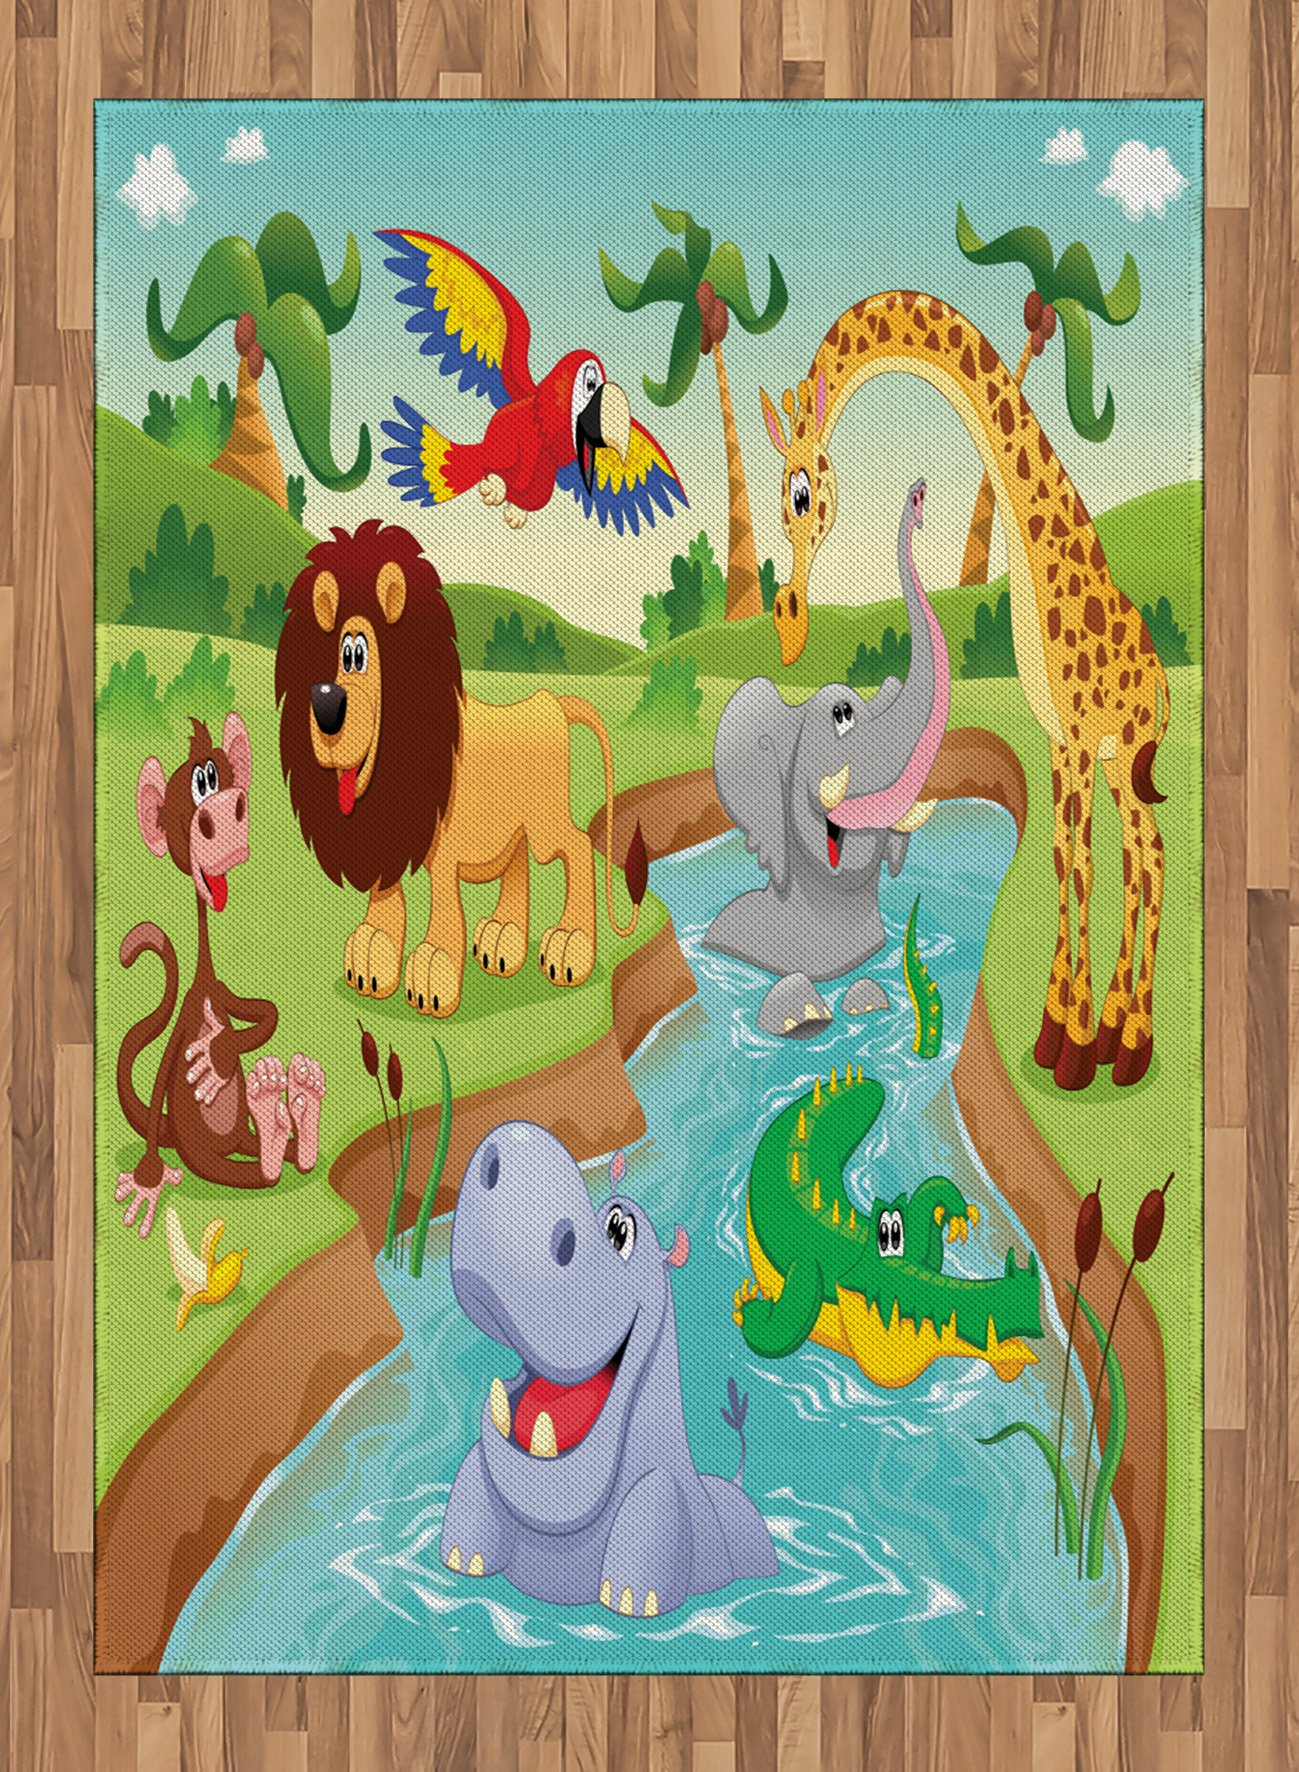 Children Area Rug by Ambesonne, Cartoon Safari African Animals Swimming in the Lake Elephant Lions And Giraffe Art, Flat Woven Accent Rug for Living Room Bedroom Dining Room, 5.2 x 7.5 FT, Multicolor